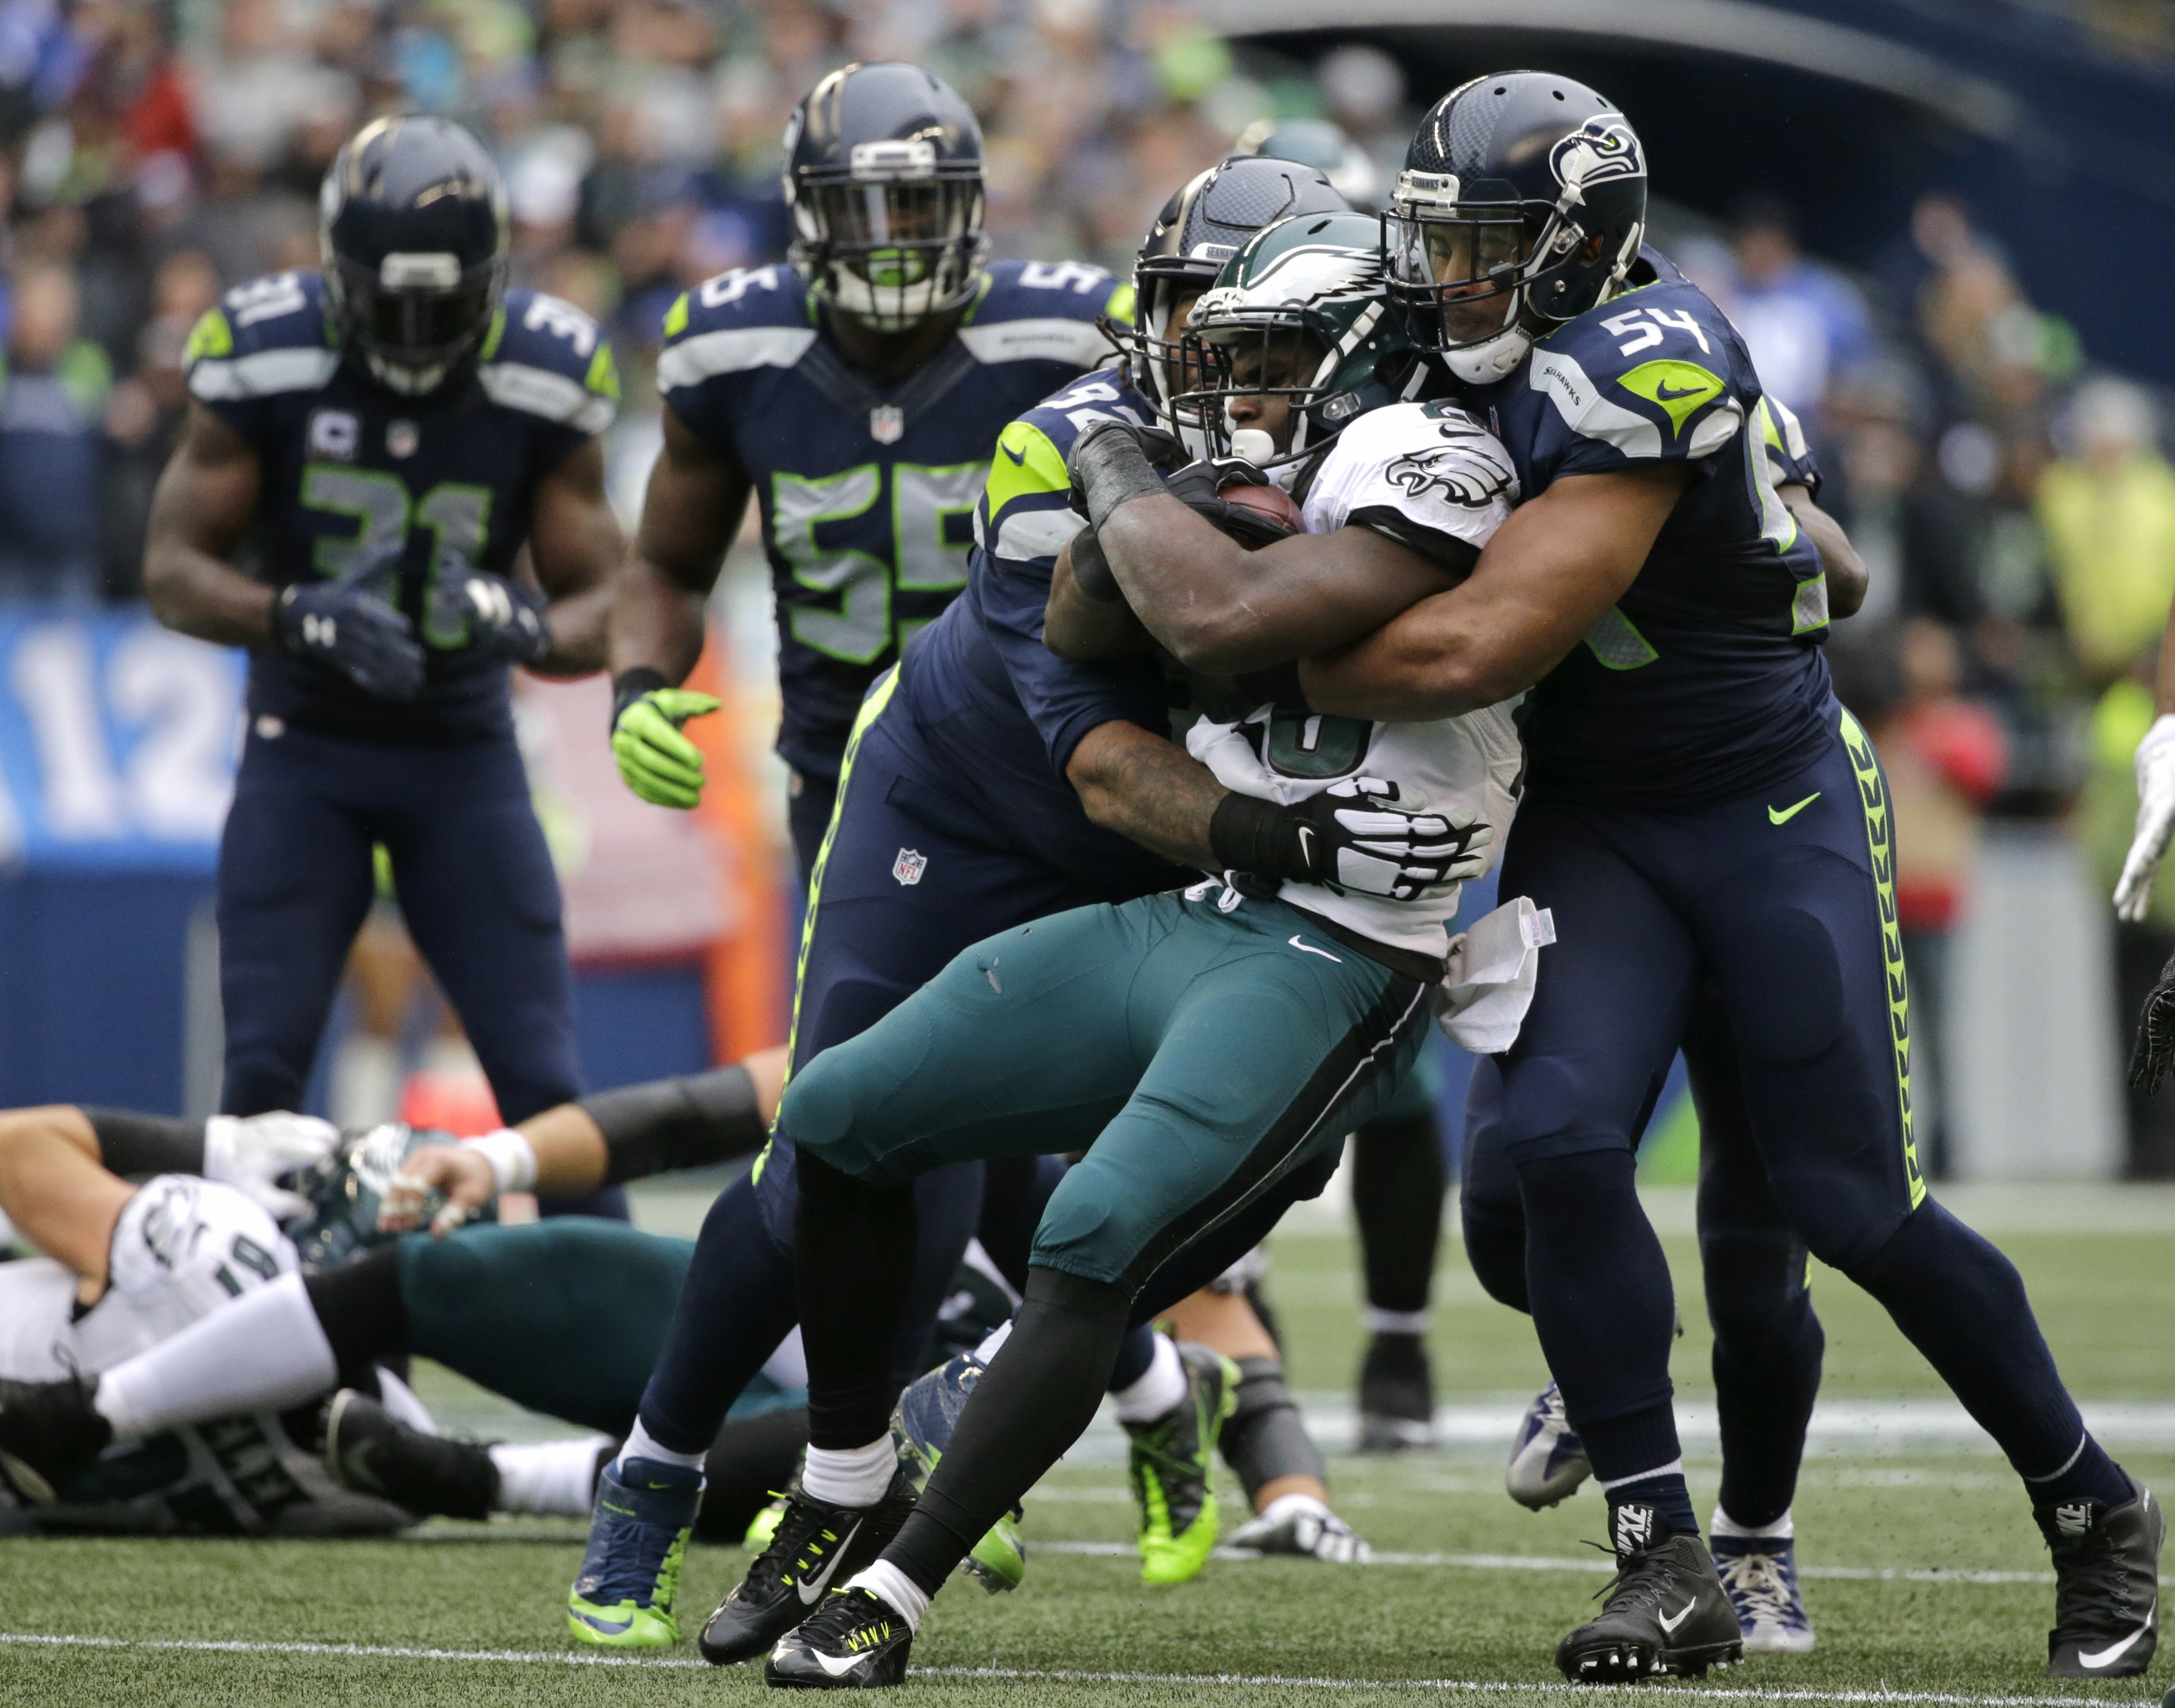 Philadelphia Eagles running back Wendell Smallwood is wrapped up by Seattle Seahawks middle linebacker Bobby Wagner, right, and defensive tackle John Jenkins in the first half of an NFL football game, Sunday, Nov. 20, 2016, in Seattle. (AP Photo/John Fros